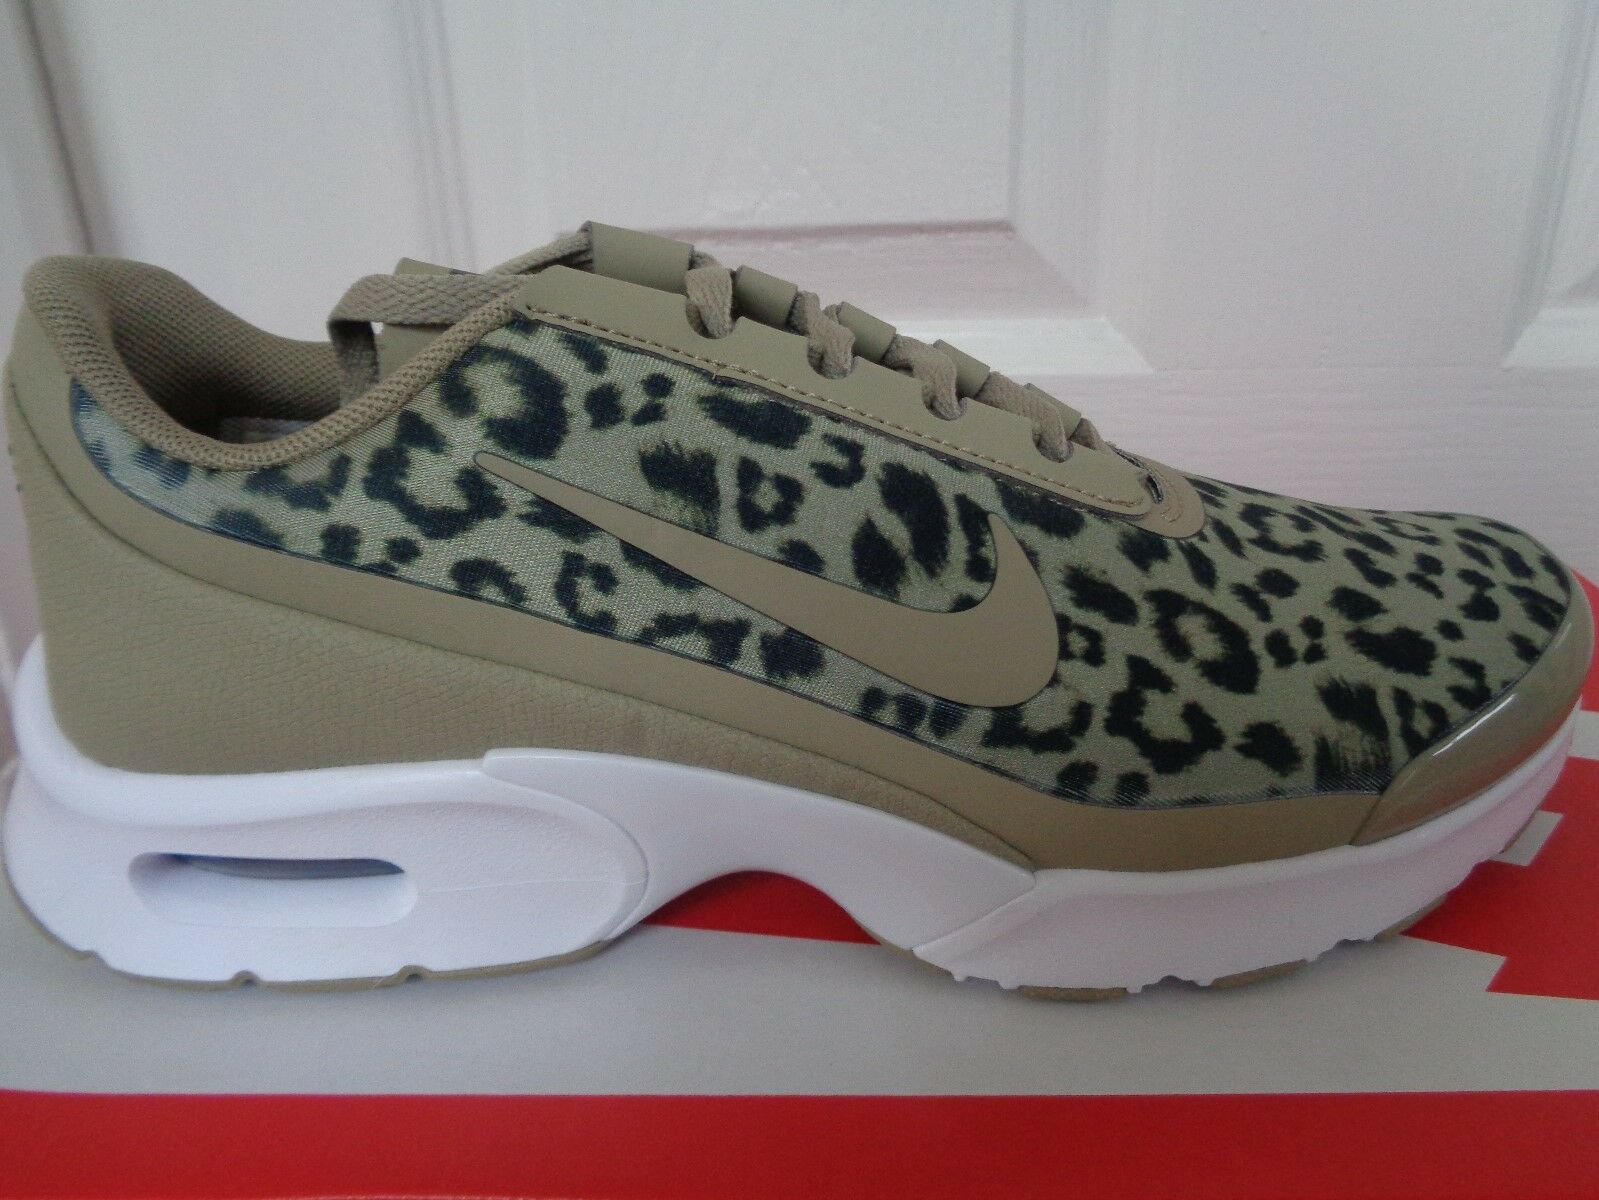 Nike Air Max Jewell Print wmns trainers AA4606 200 uk 4.5 eu 38 us 7 NEW+BOX